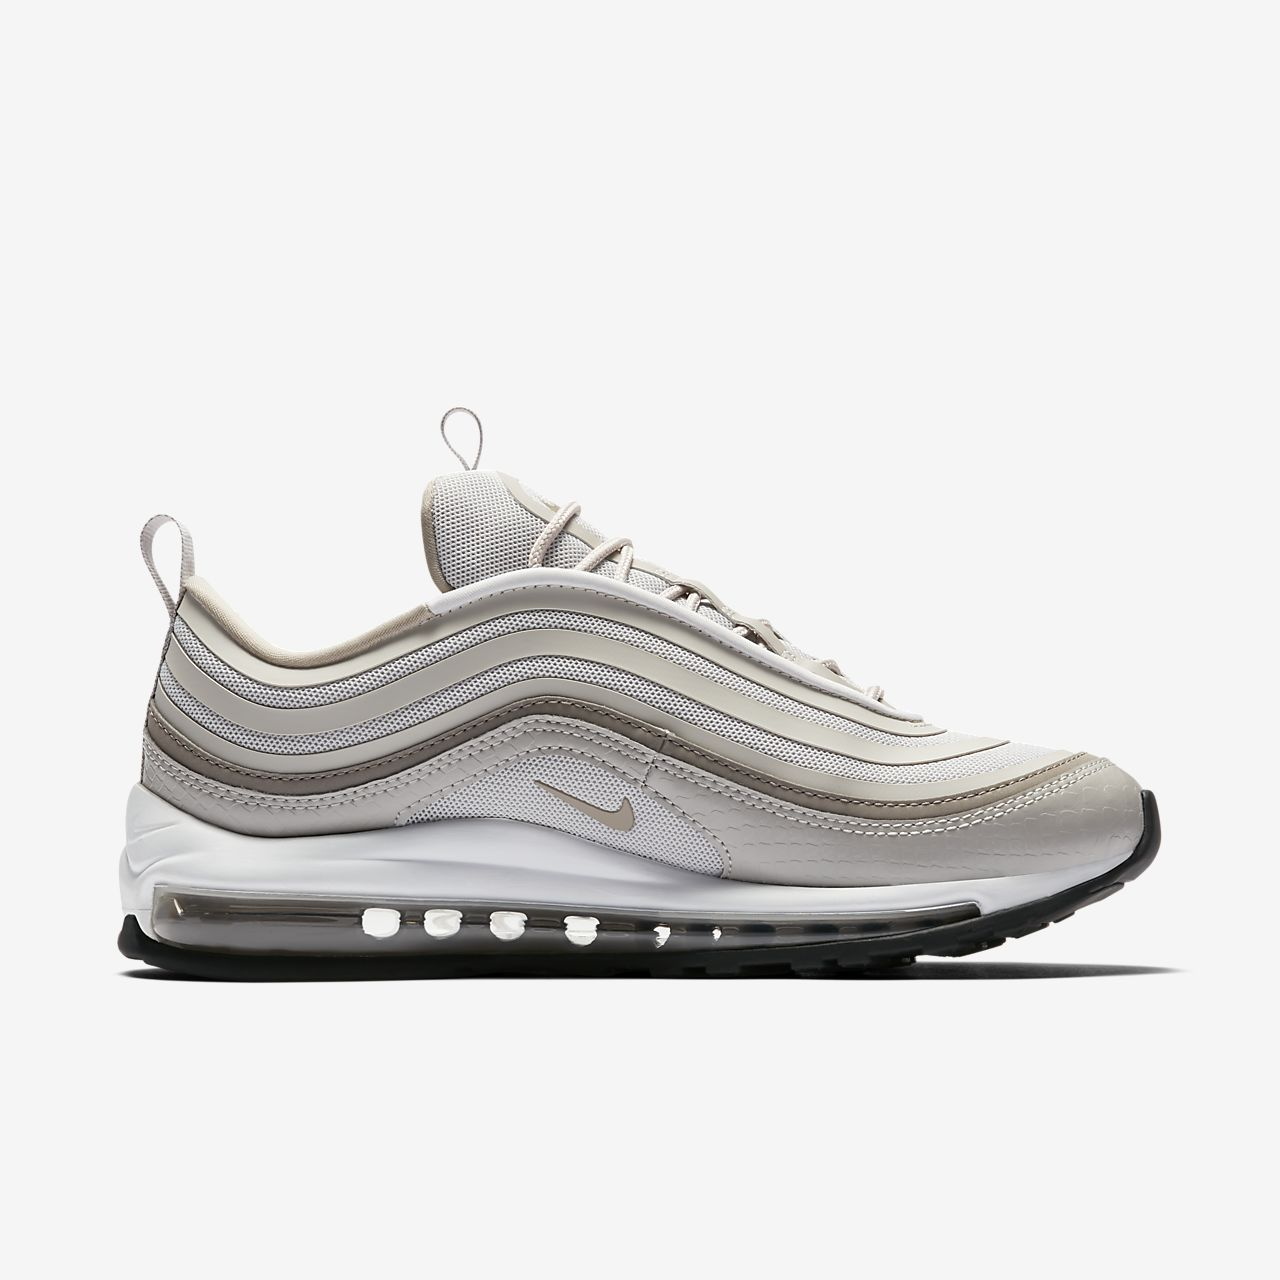 nike air max 97 ultra women's silver